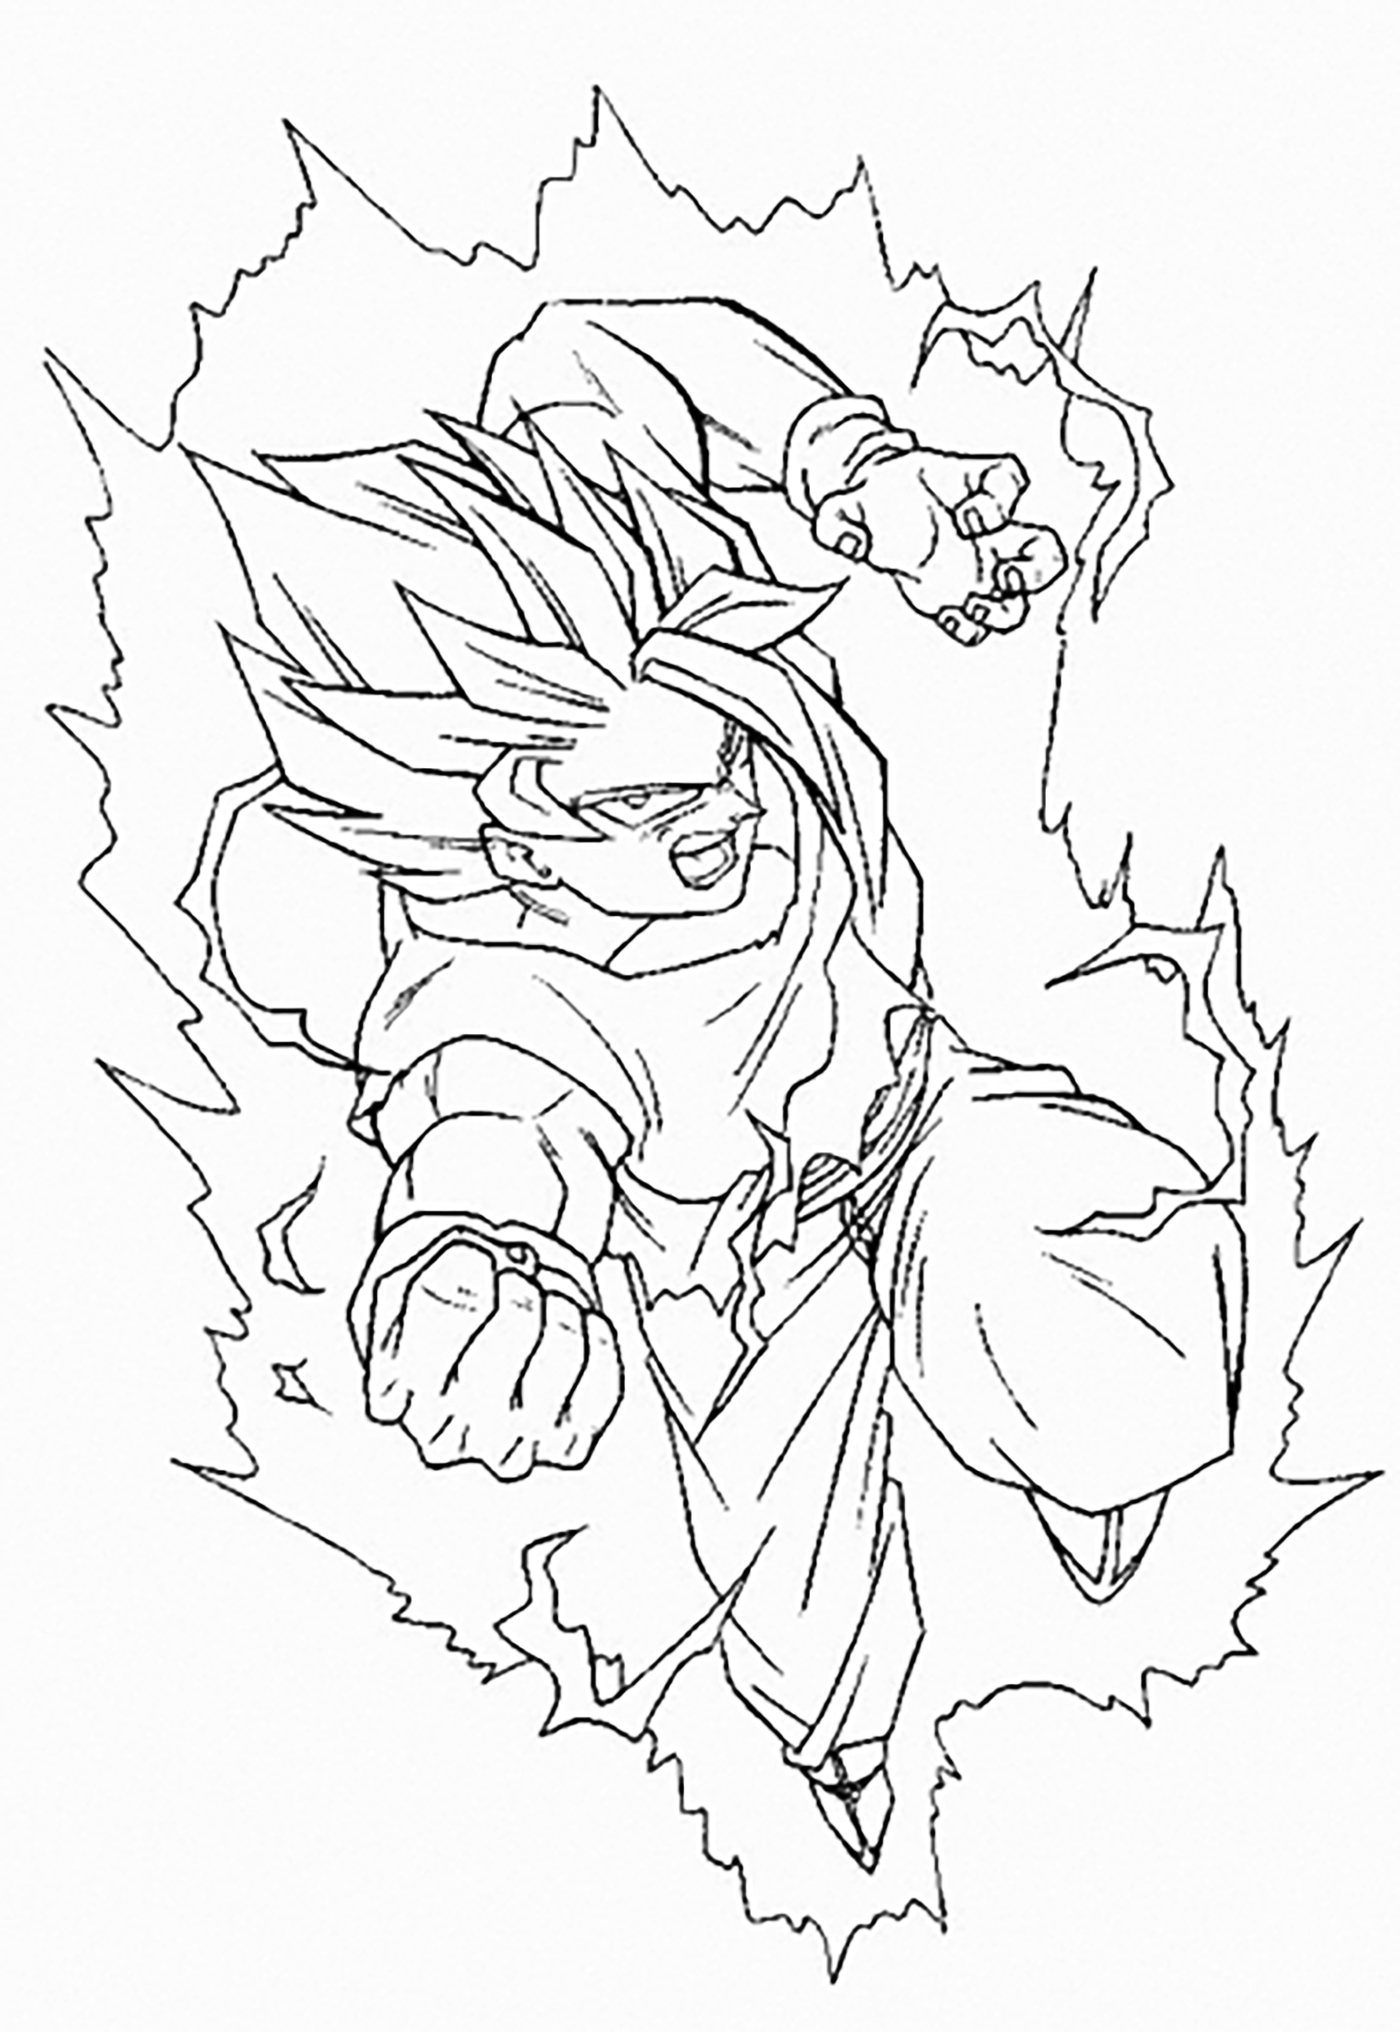 Facile dragon ball goku super saiyan 2 contre buu - Dessin de dragon ball za imprimer ...